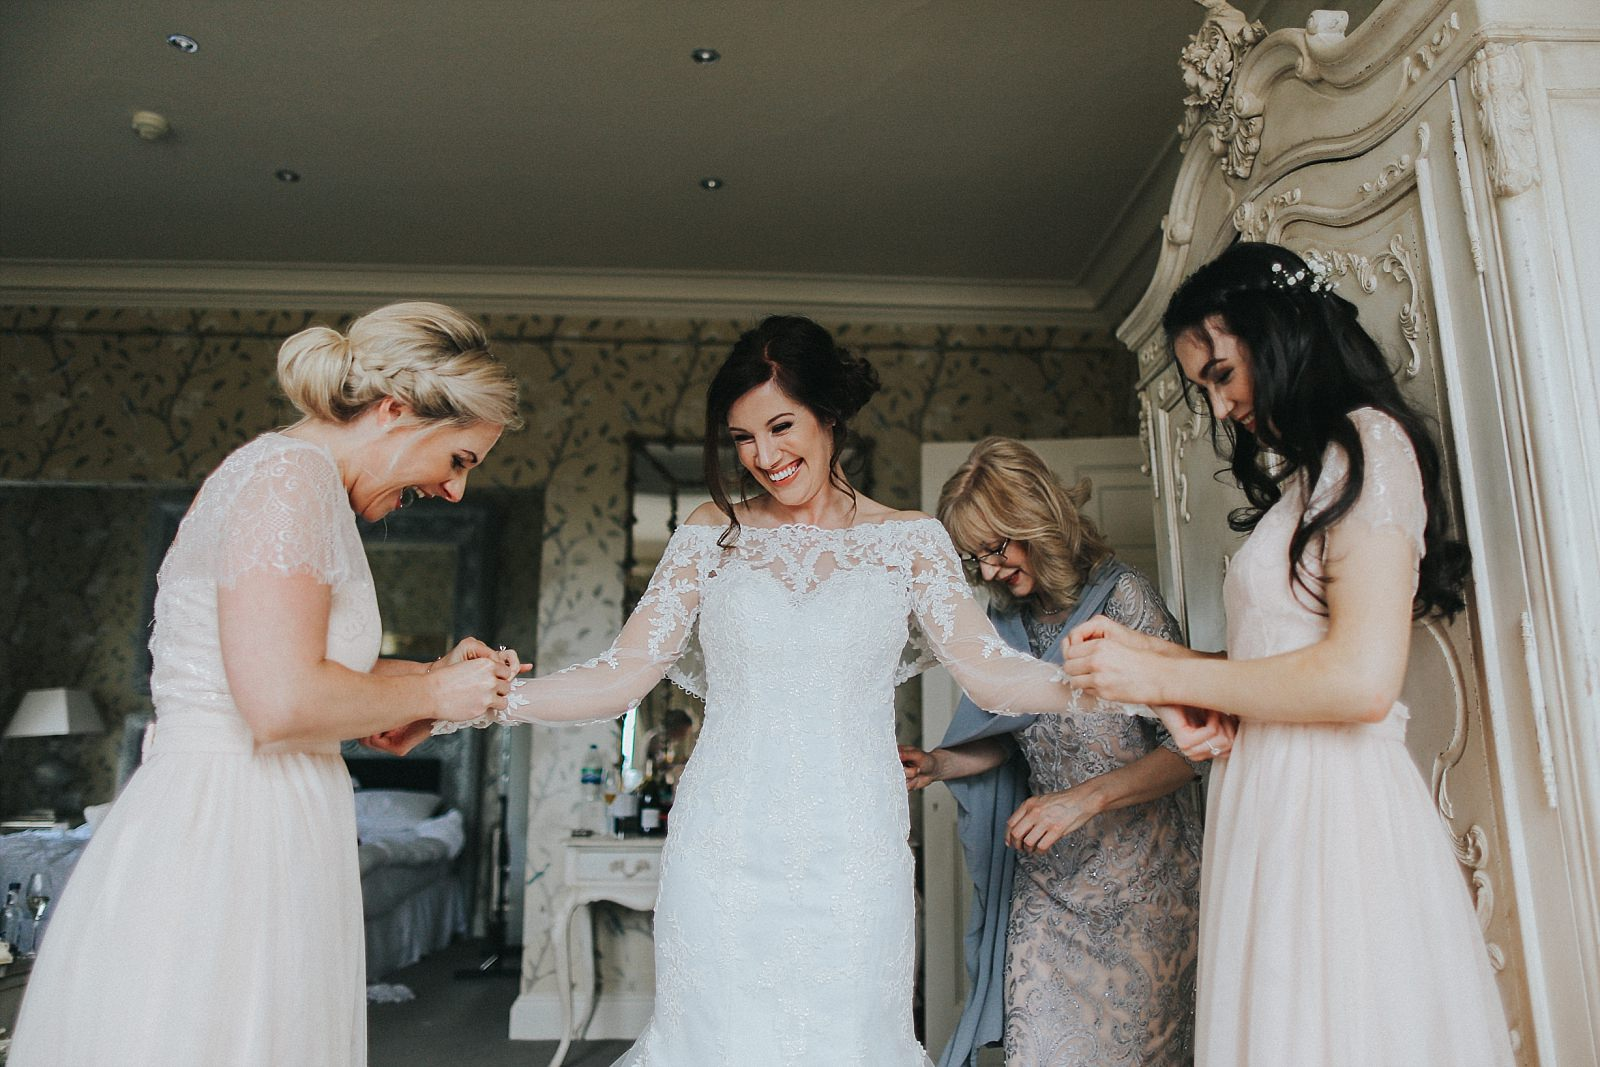 fun wedding photographer captures the bridesmaids helping